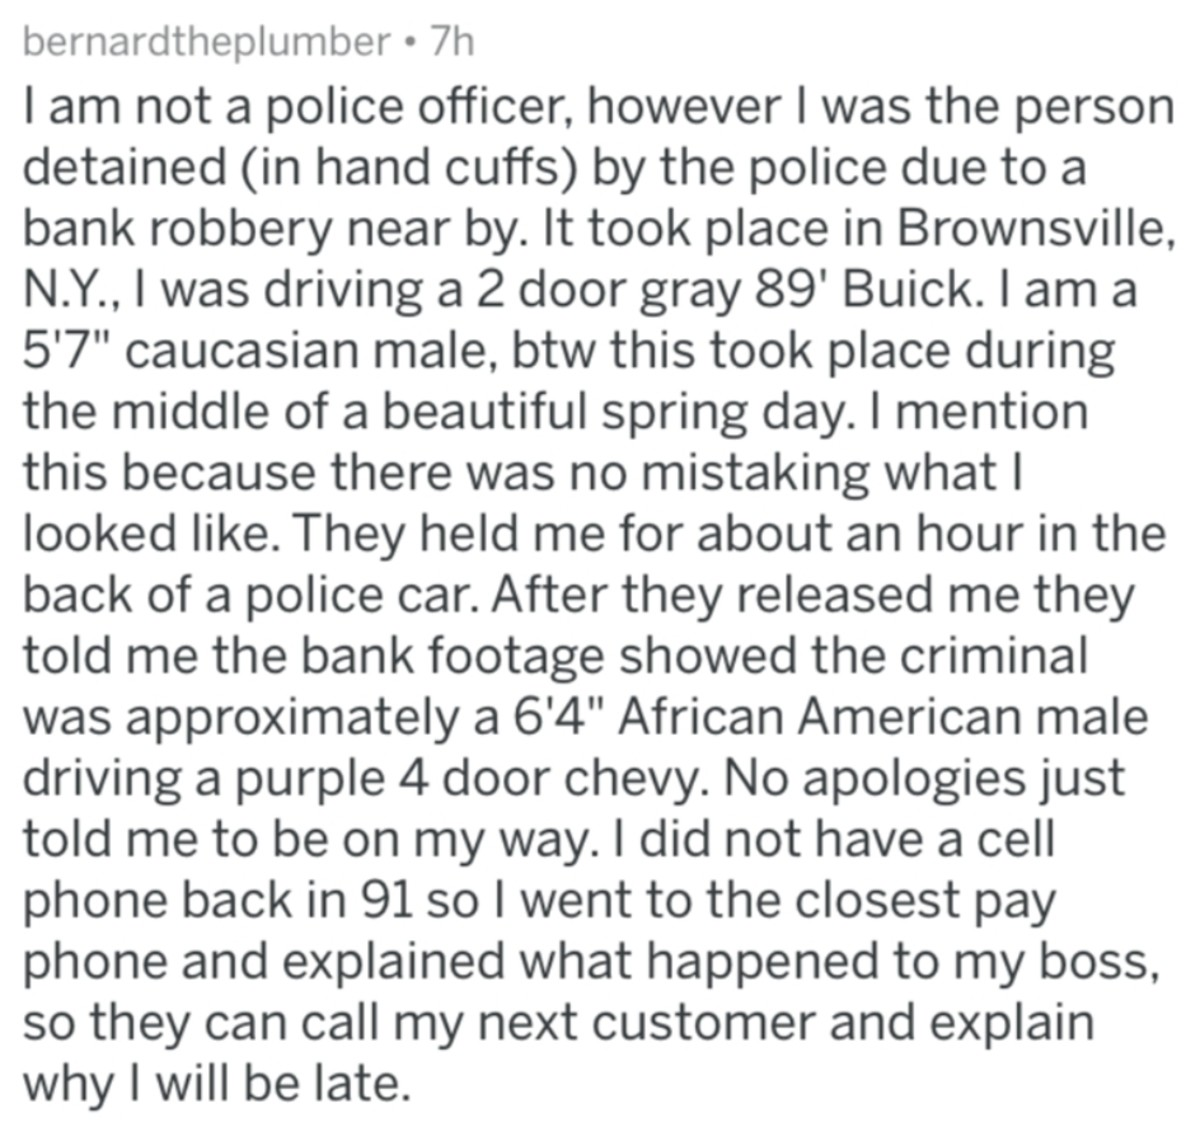 Police up stories. .. The last one really isn't a police up, more like cunt ex that got what she deserved